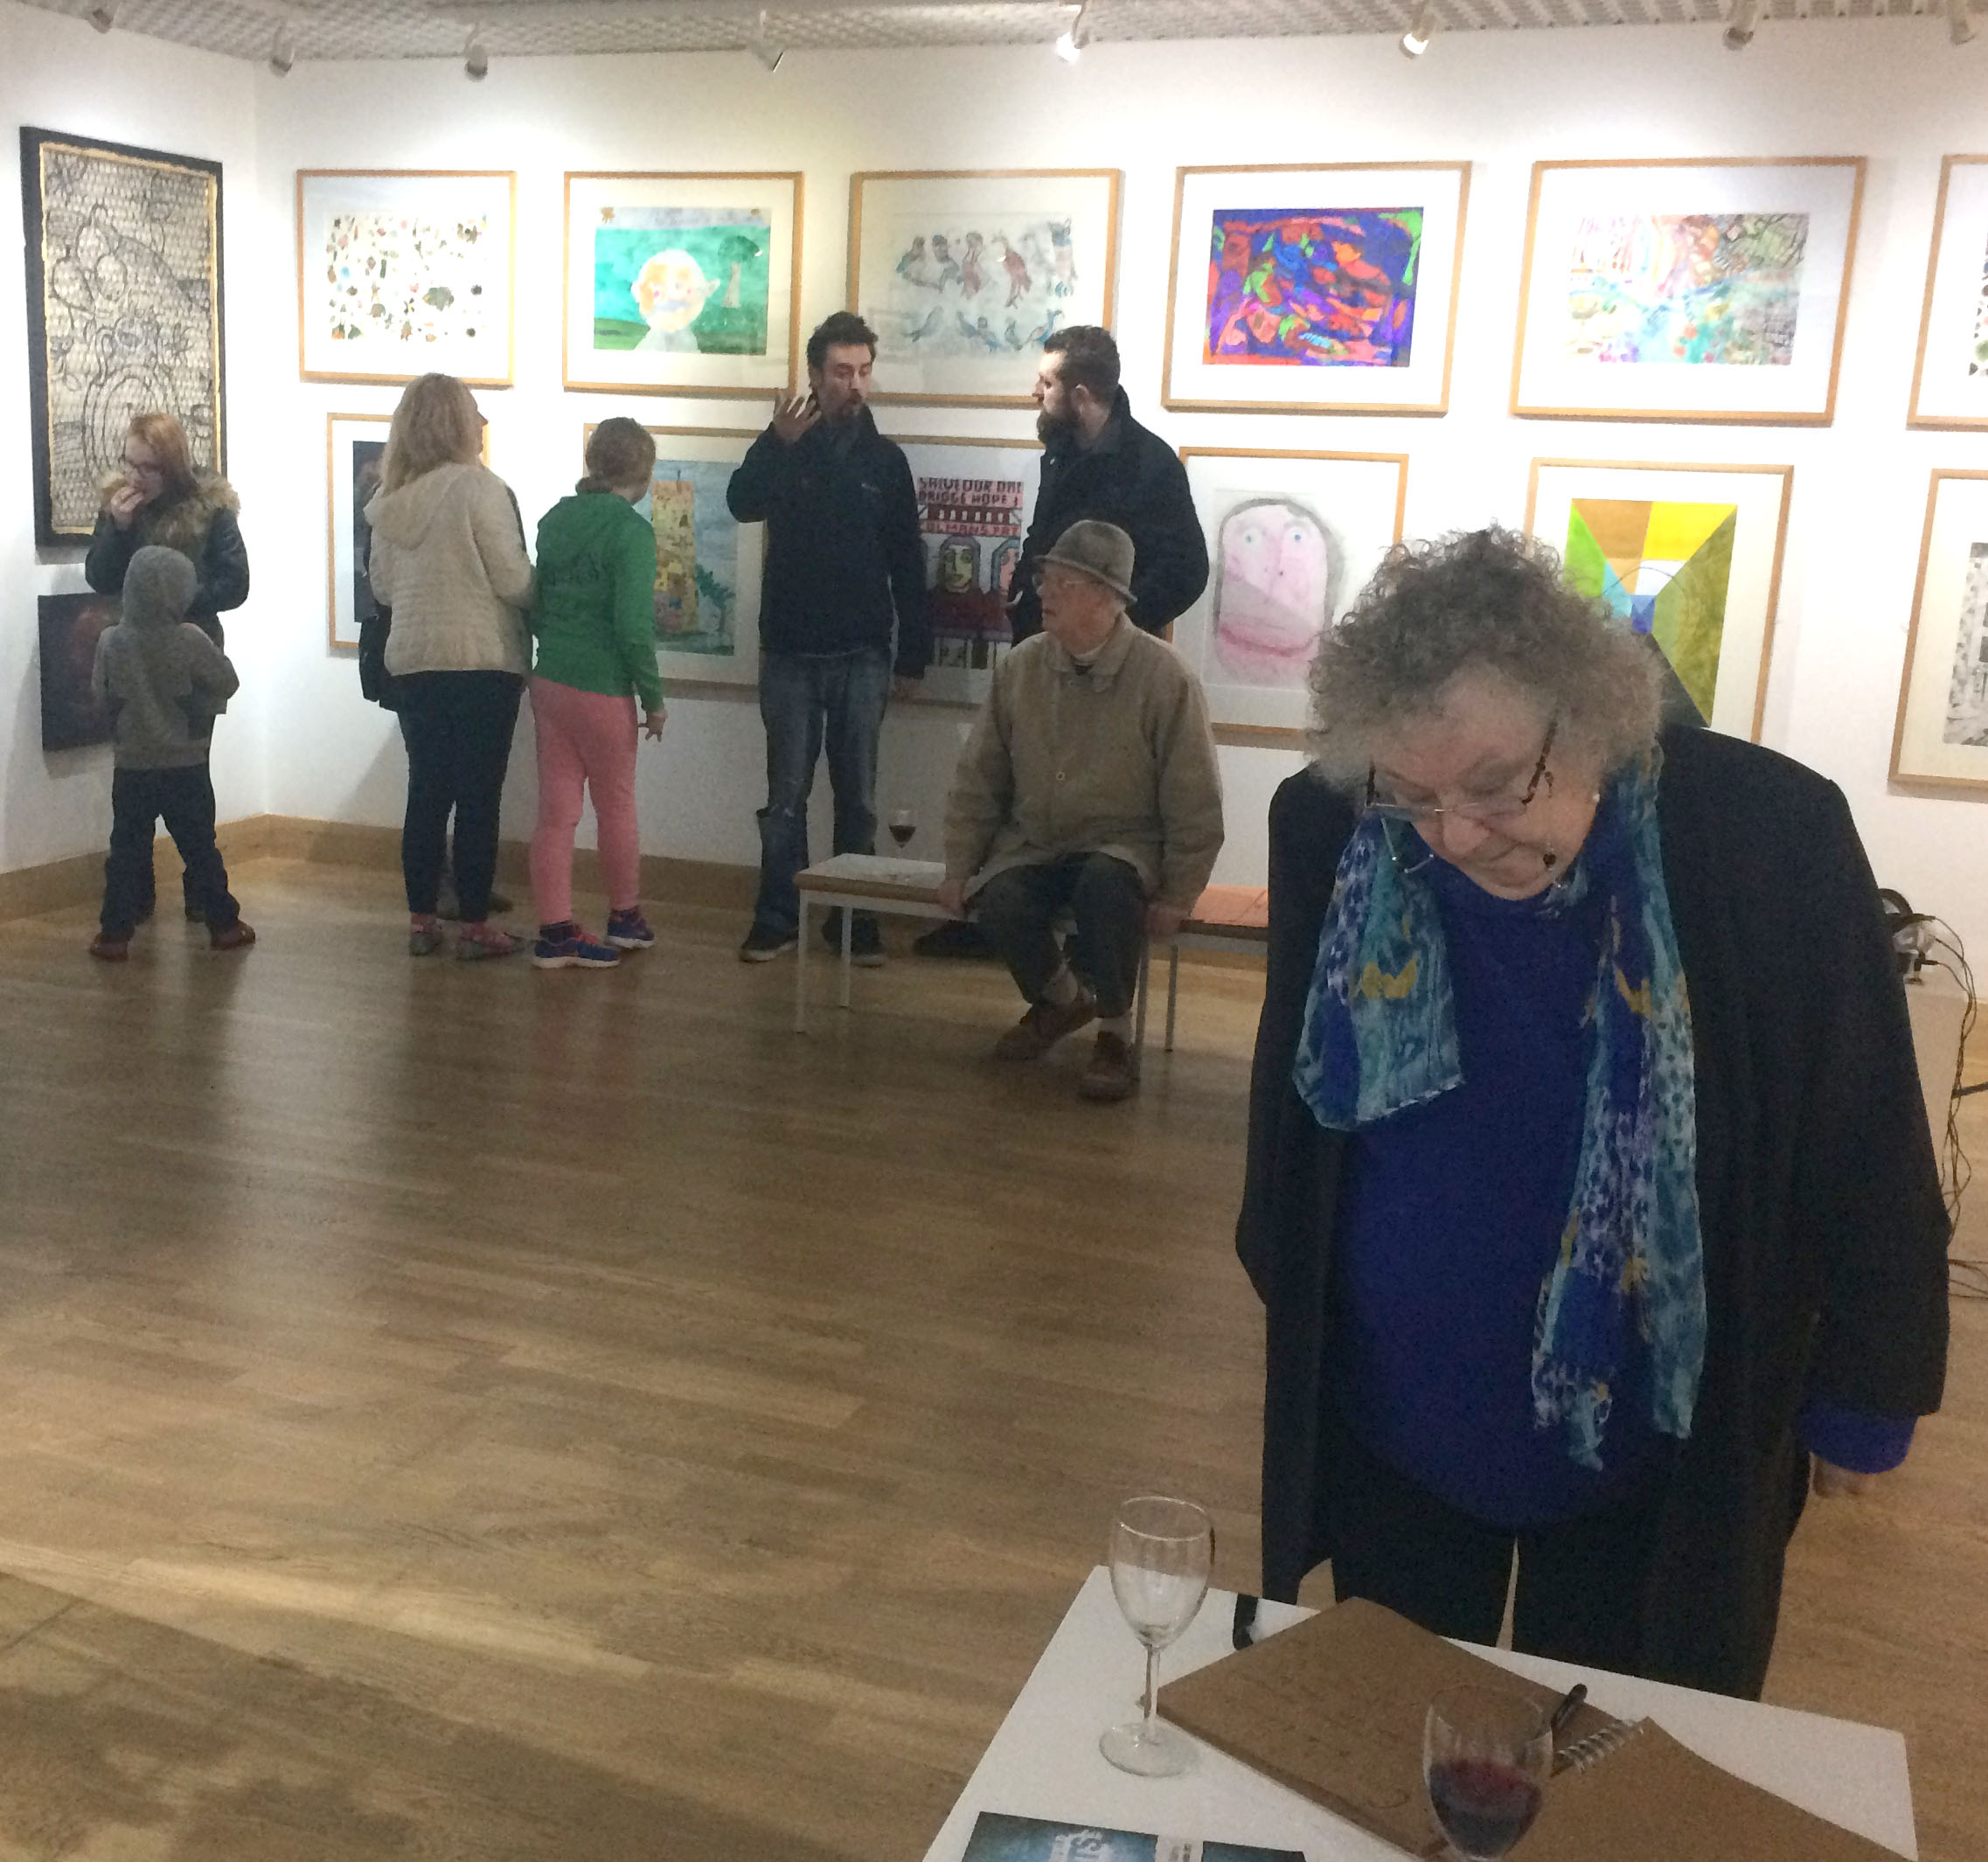 Show Your Work at Open Art Exhibition